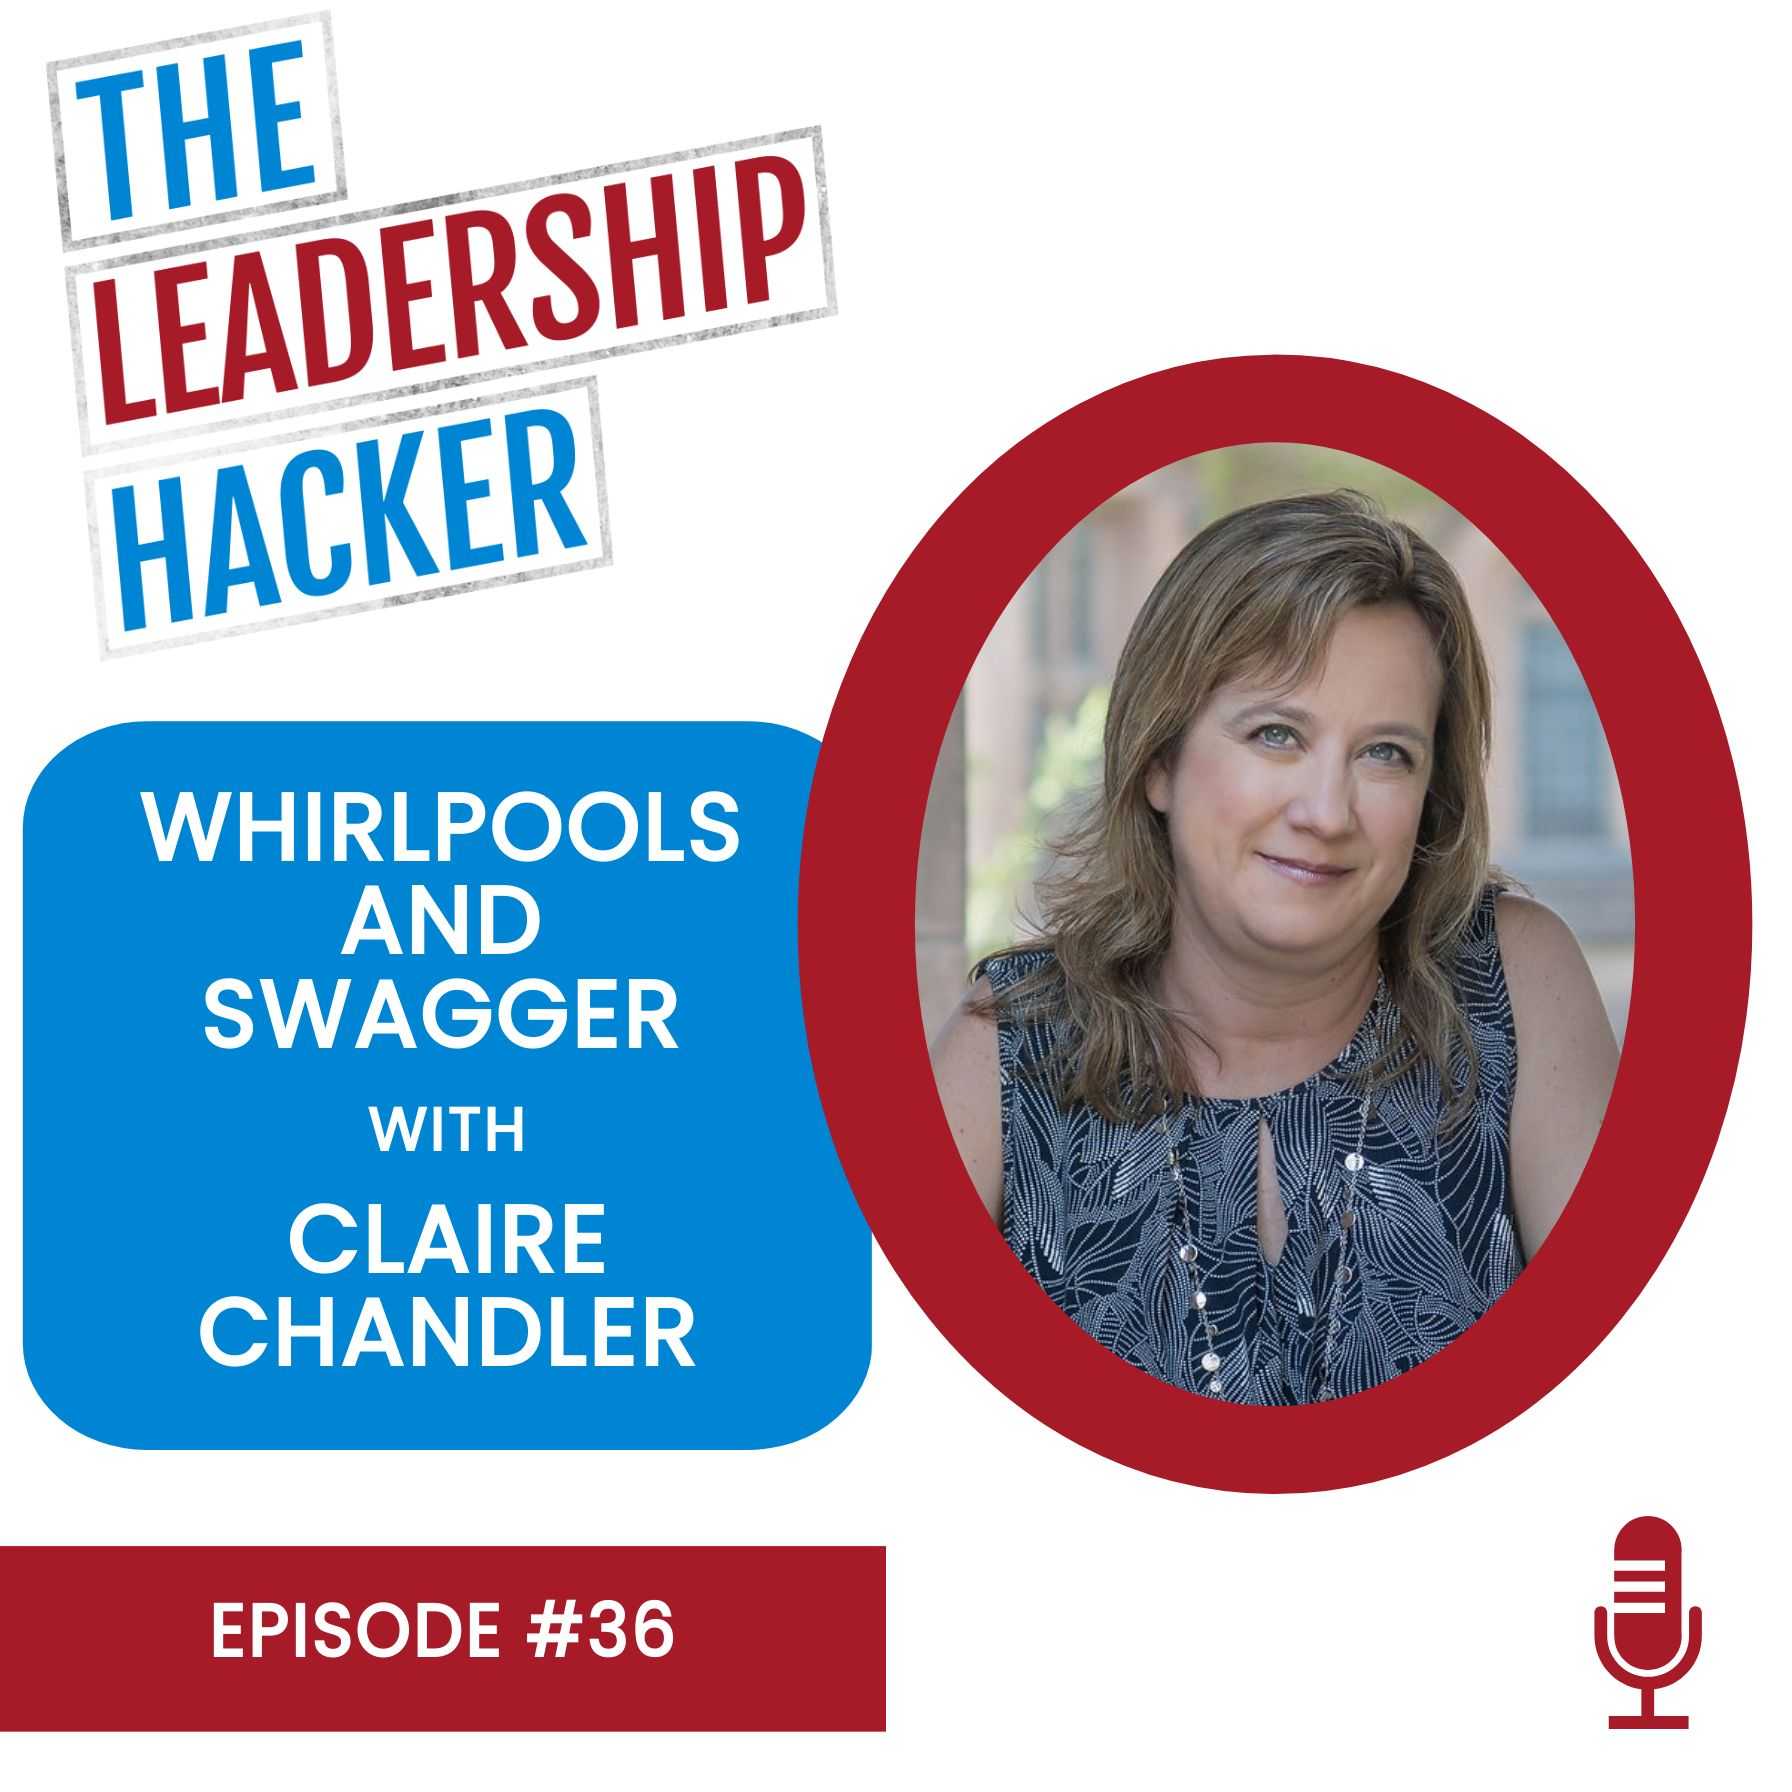 Whirlpools and Swagger with Claire Chandler